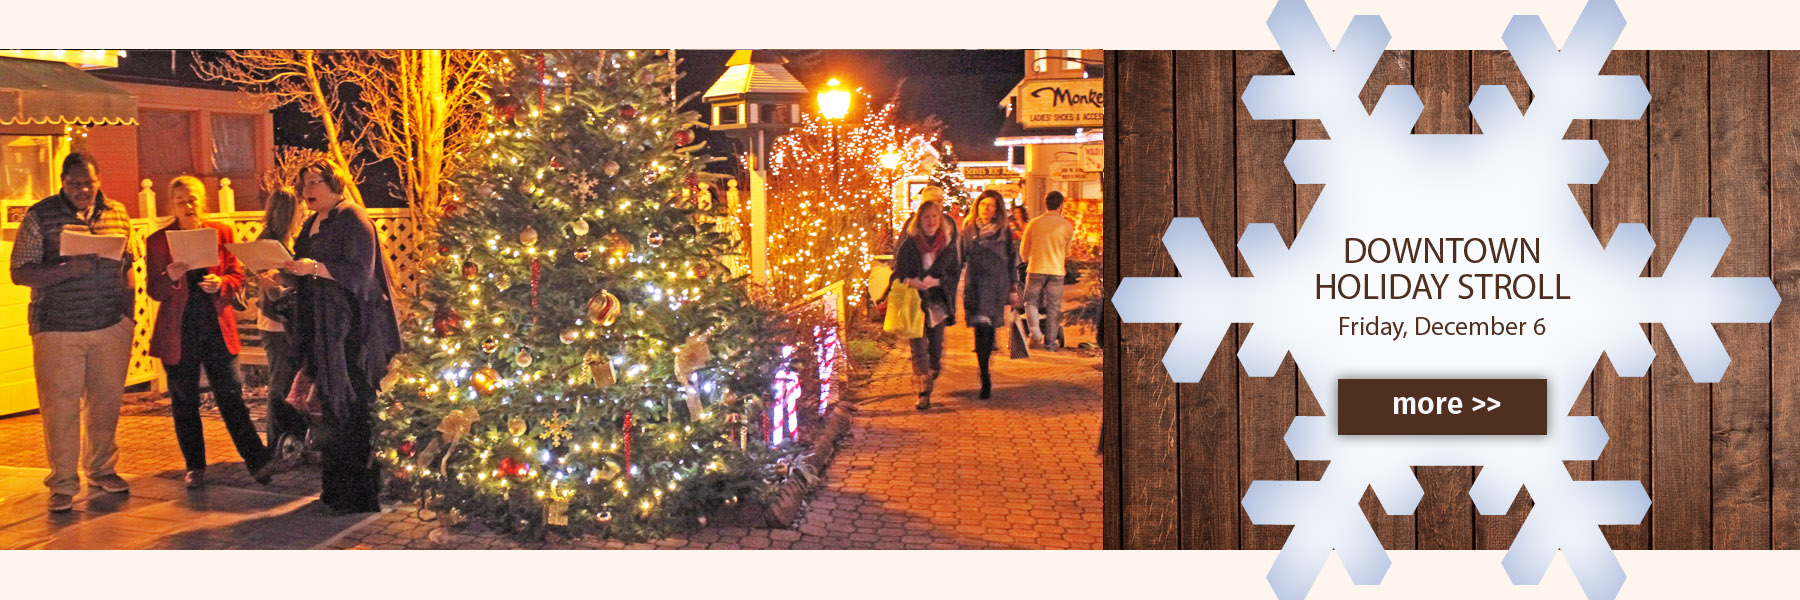 Downtown holiday stroll in Blowing Rock